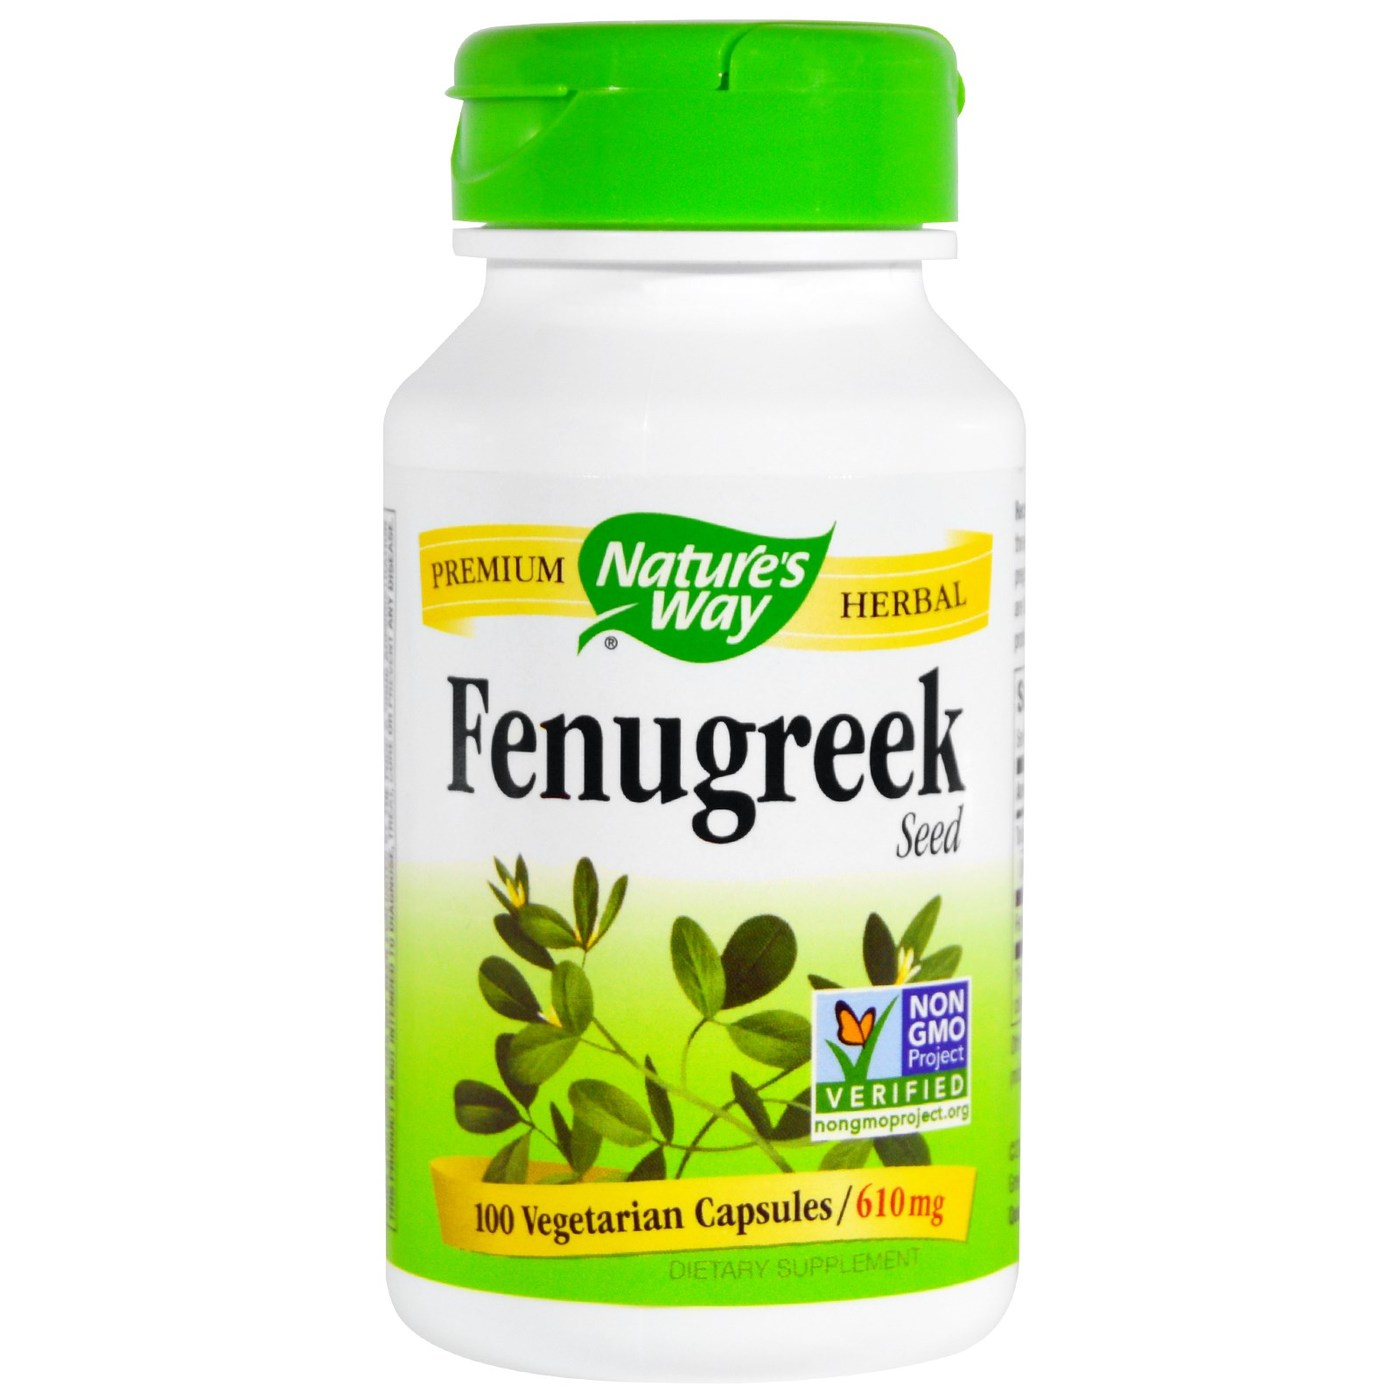 buy nature 39 s way fenugreek seed 610 mg 100 capsules evitamins australia. Black Bedroom Furniture Sets. Home Design Ideas